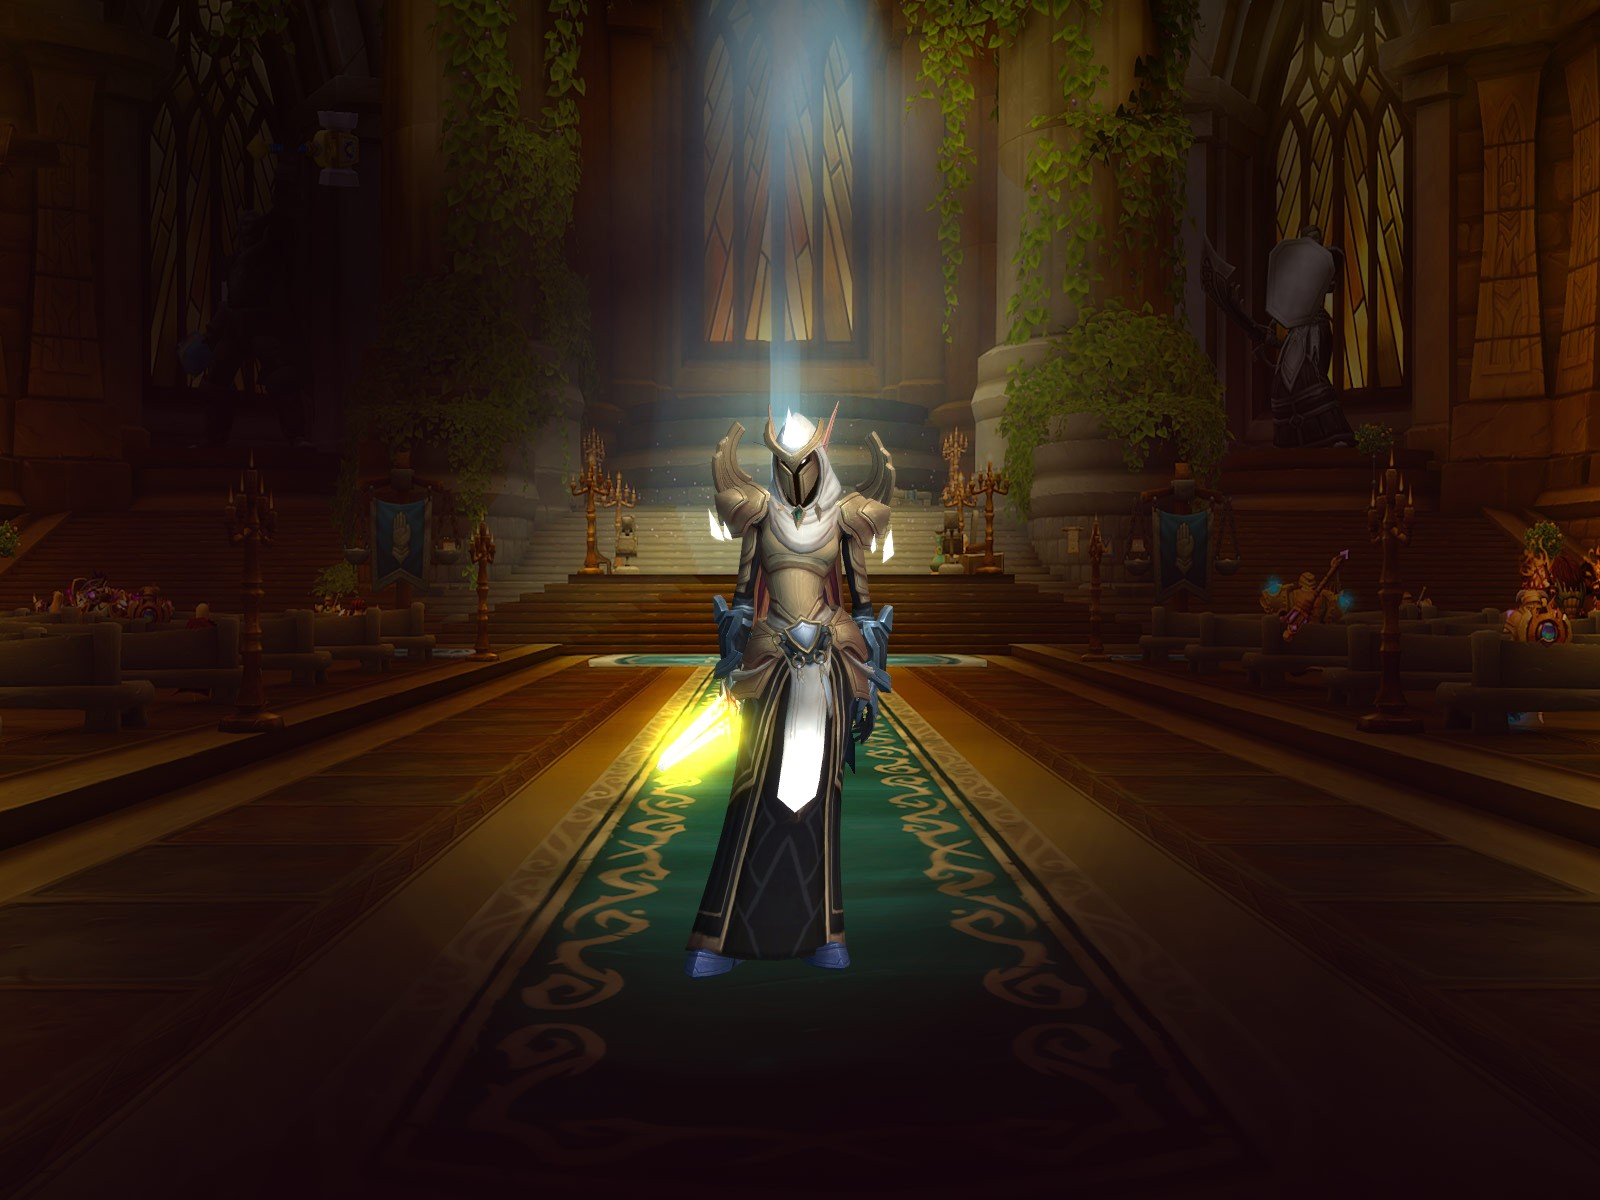 373 Ret Looking for guild - Guild Recruitment - World of Warcraft Forums